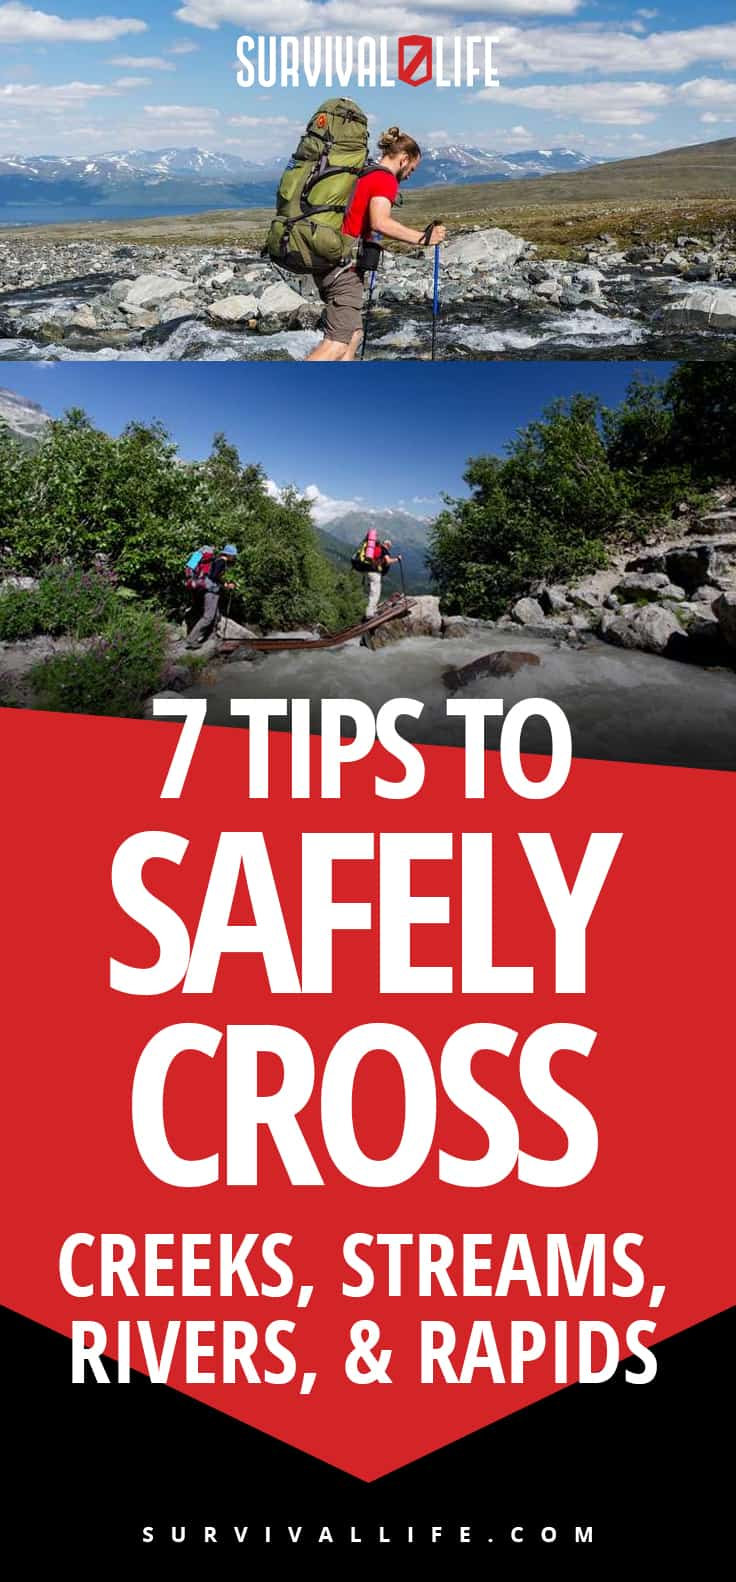 7 Tips To Safely Cross Creeks, Streams, Rivers, and Rapids